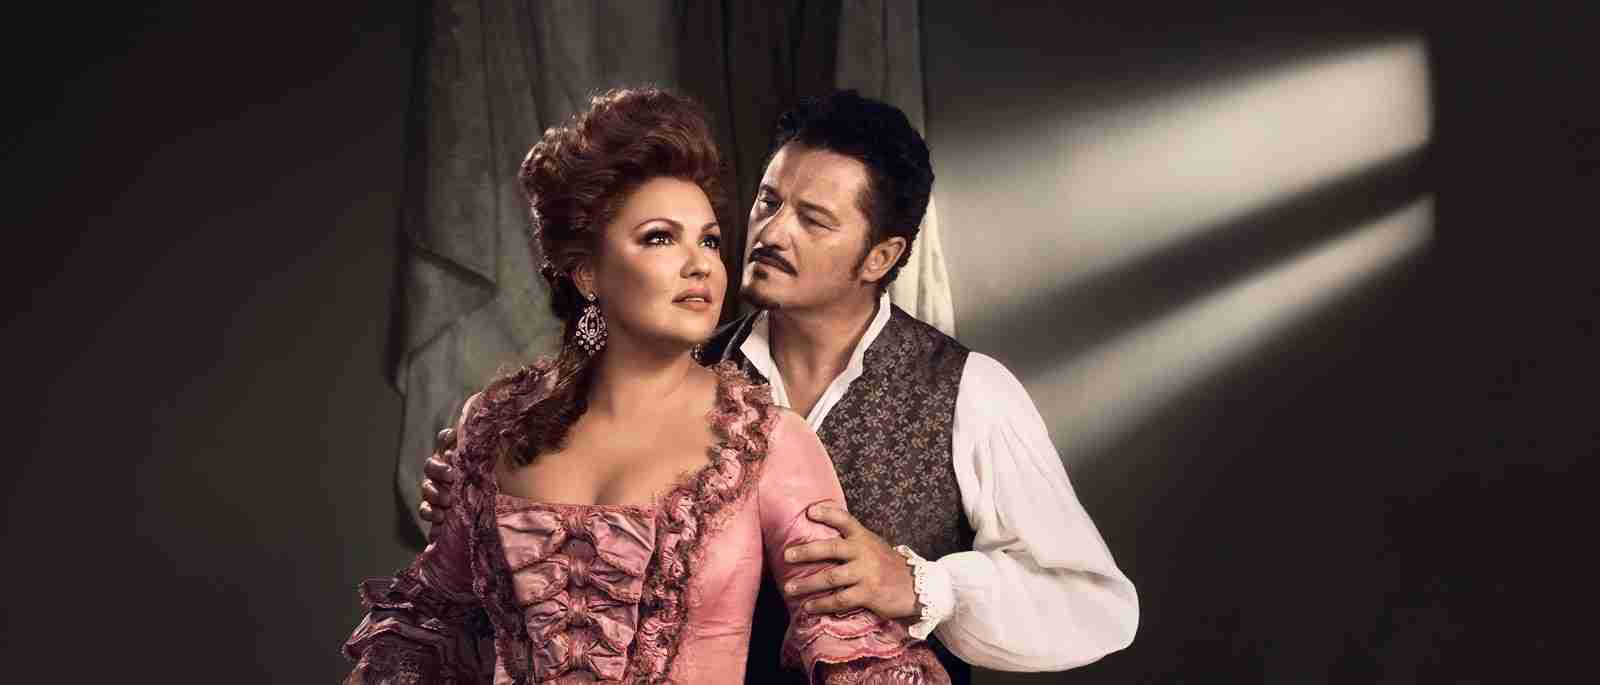 Adriana Lecouvreur To Screen Live In Cinemas As Part Of The Met HD